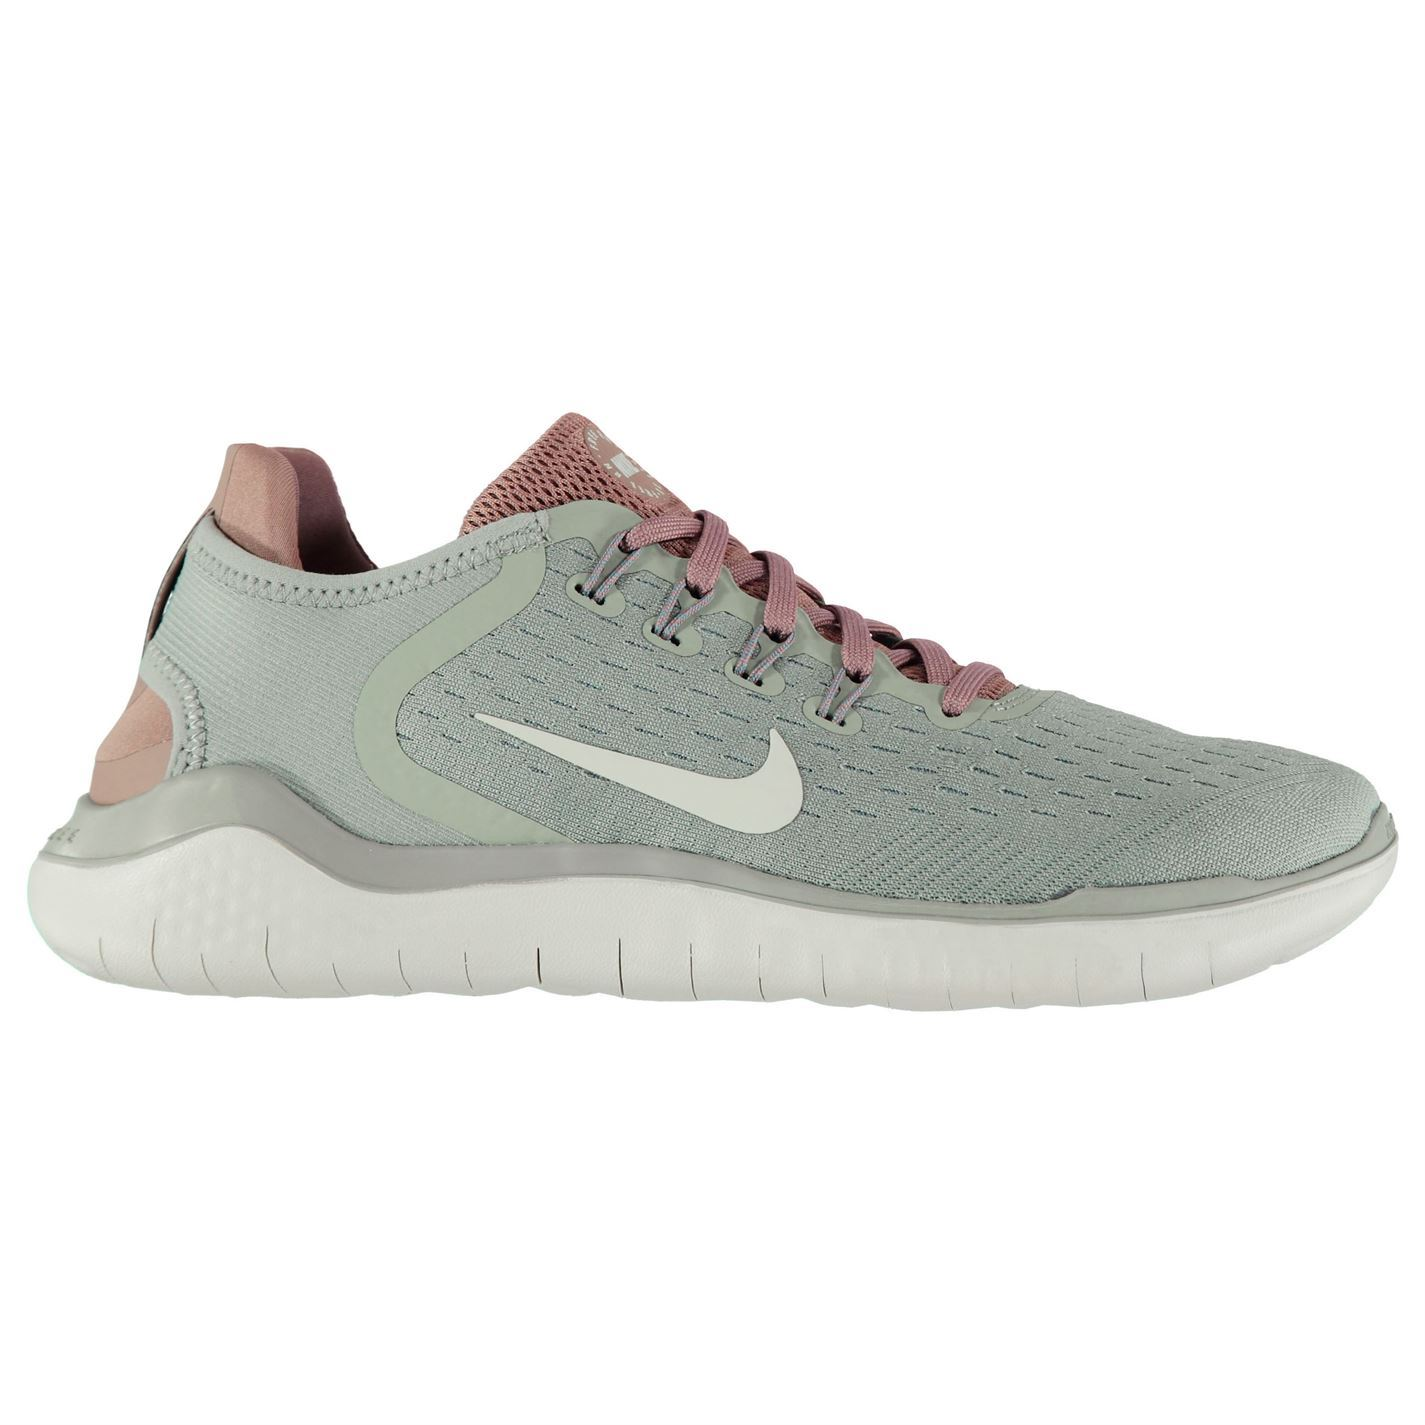 the best attitude 4dc1c d63fc Details about Nike Free Run 2018 Running Shoes Womens Jogging Trainers  Sneakers Fitness